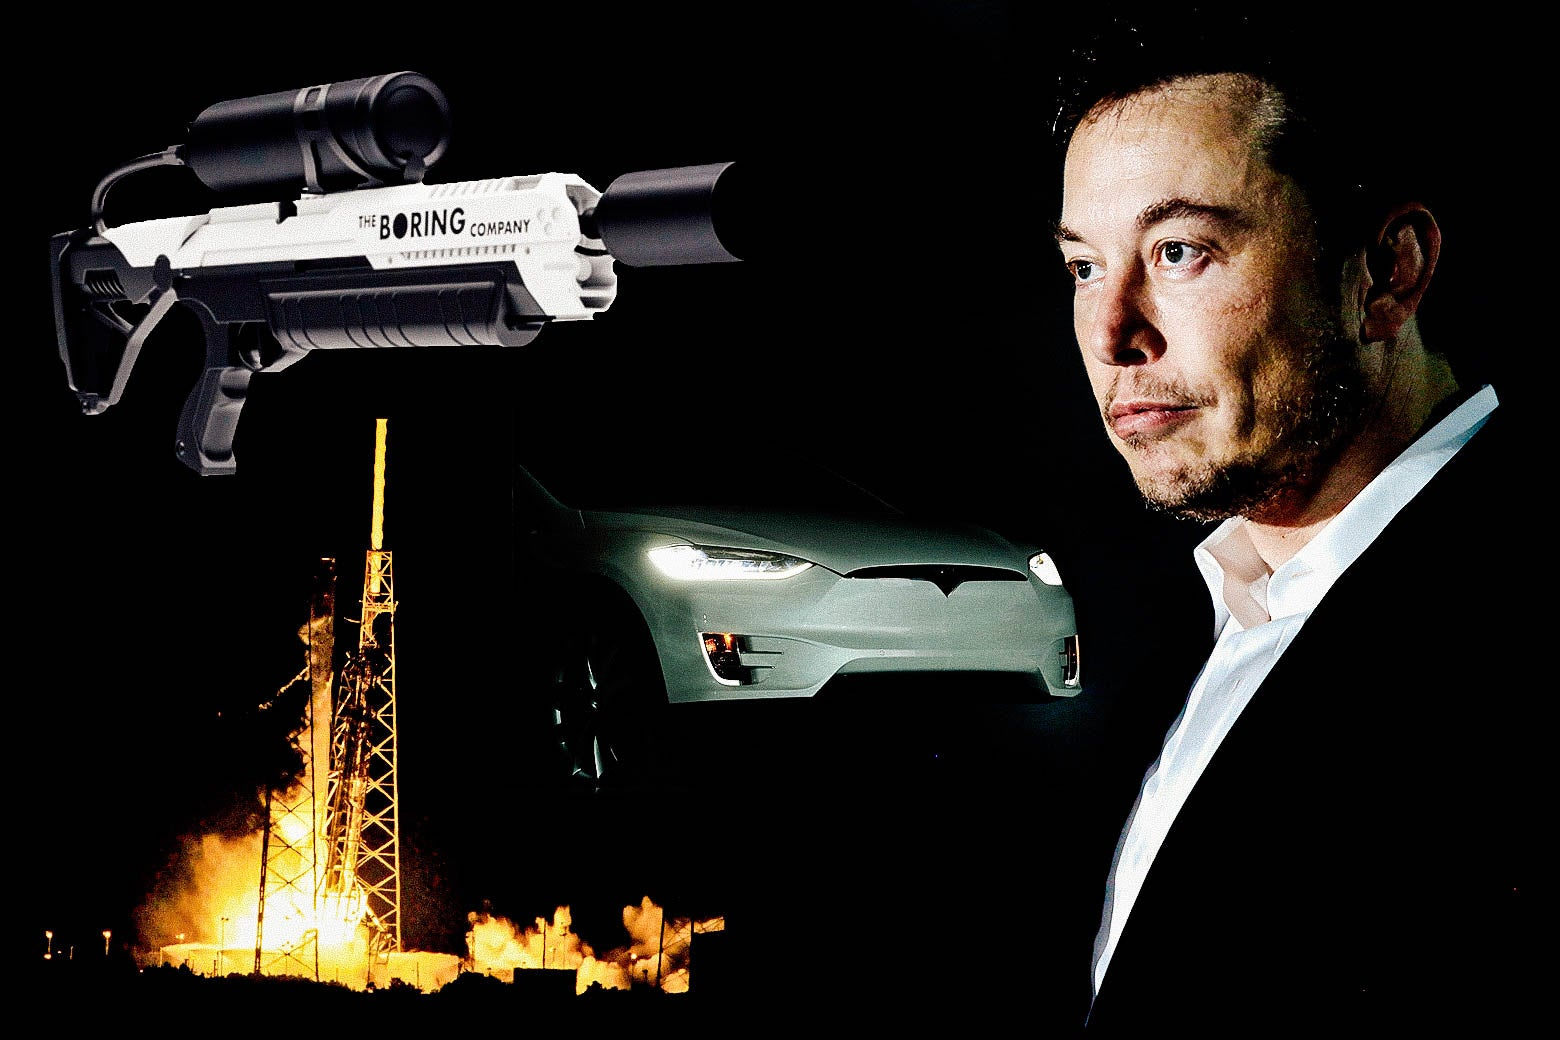 A collage of a Boring Company flamethrower, a Tesla, a SpaceX launch, and Elon Musk.